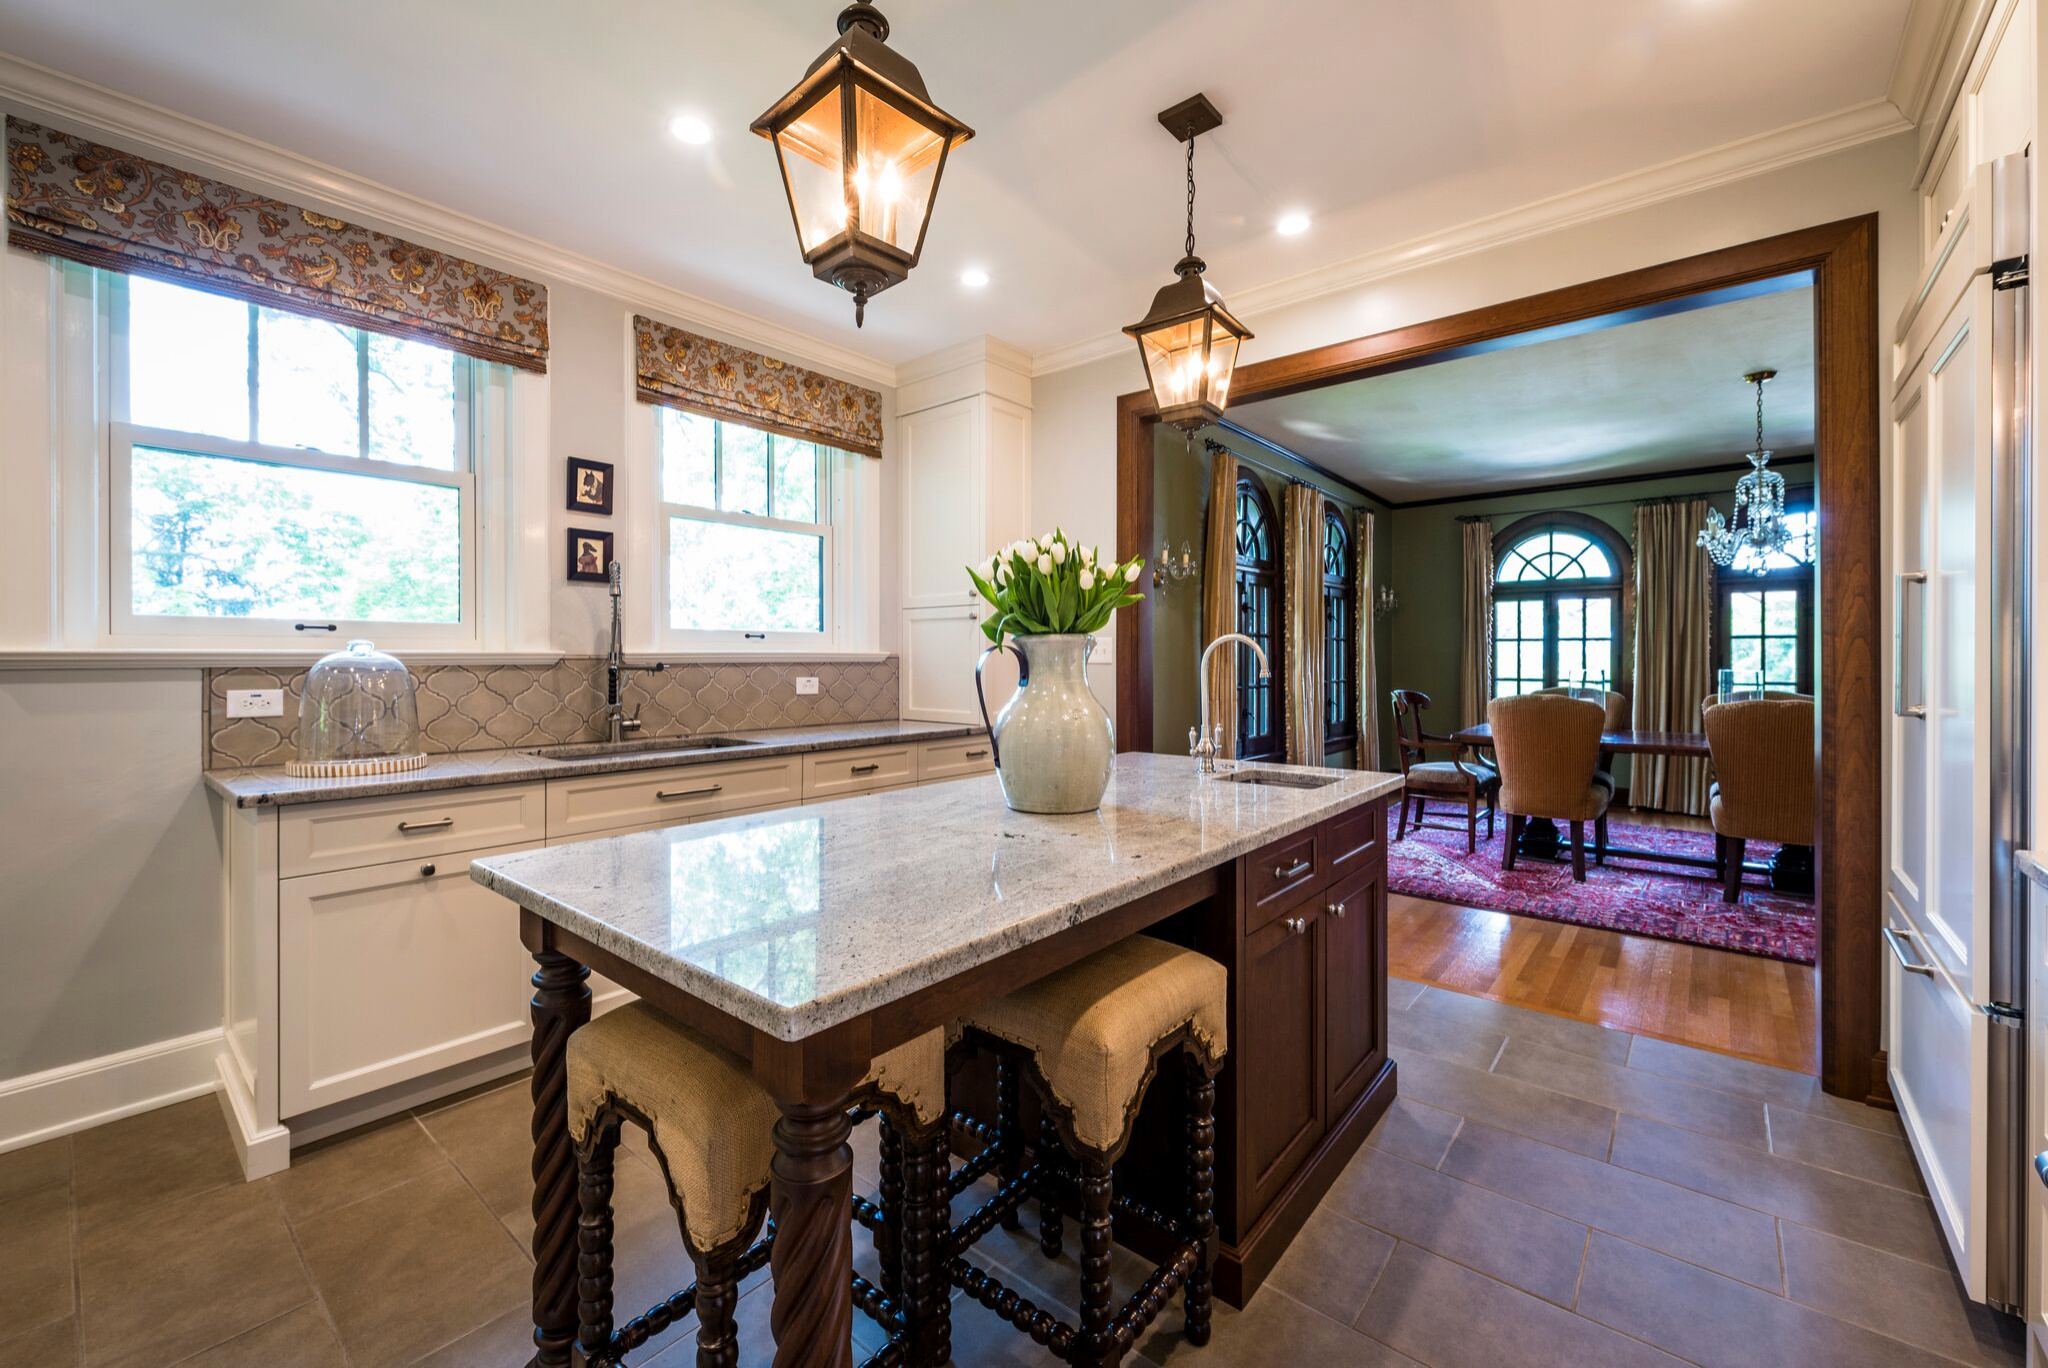 Schenk Avenue by Don Justice Cabinet Makers